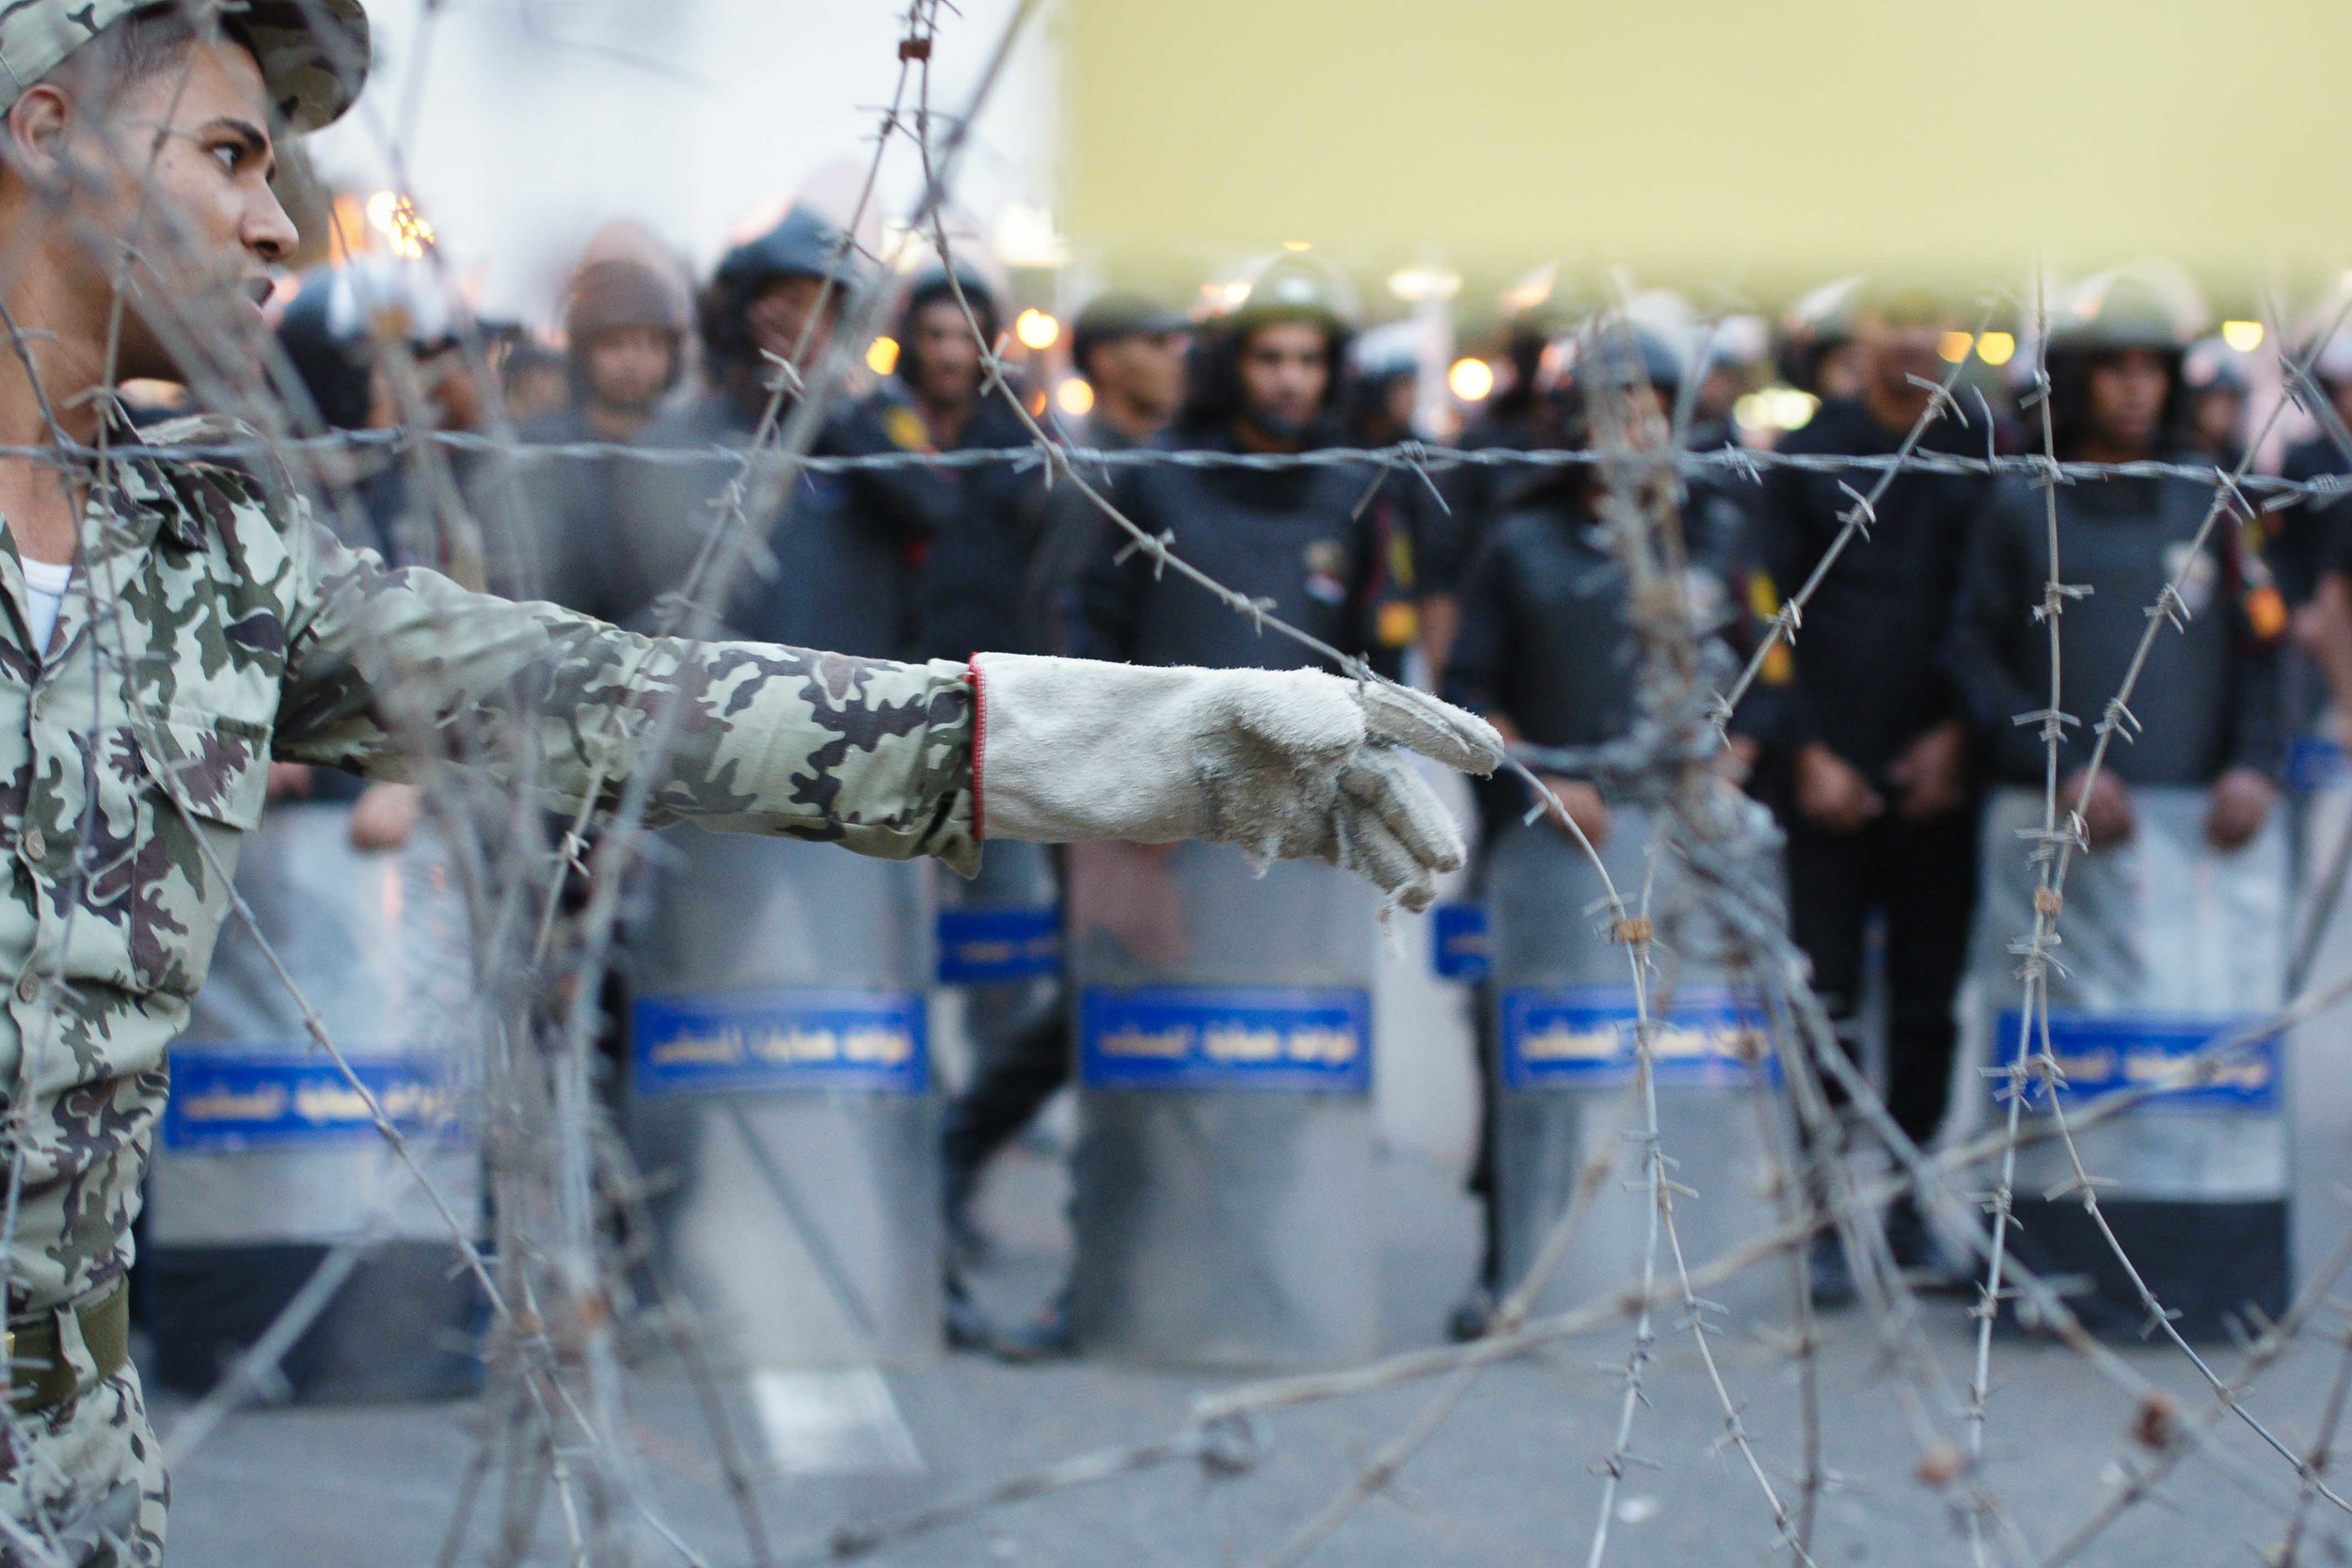 Worried that the crowd kept pushing closer, soldiers ordered the barbed wire barrier be reinforced. Some protestors eventually broke through.